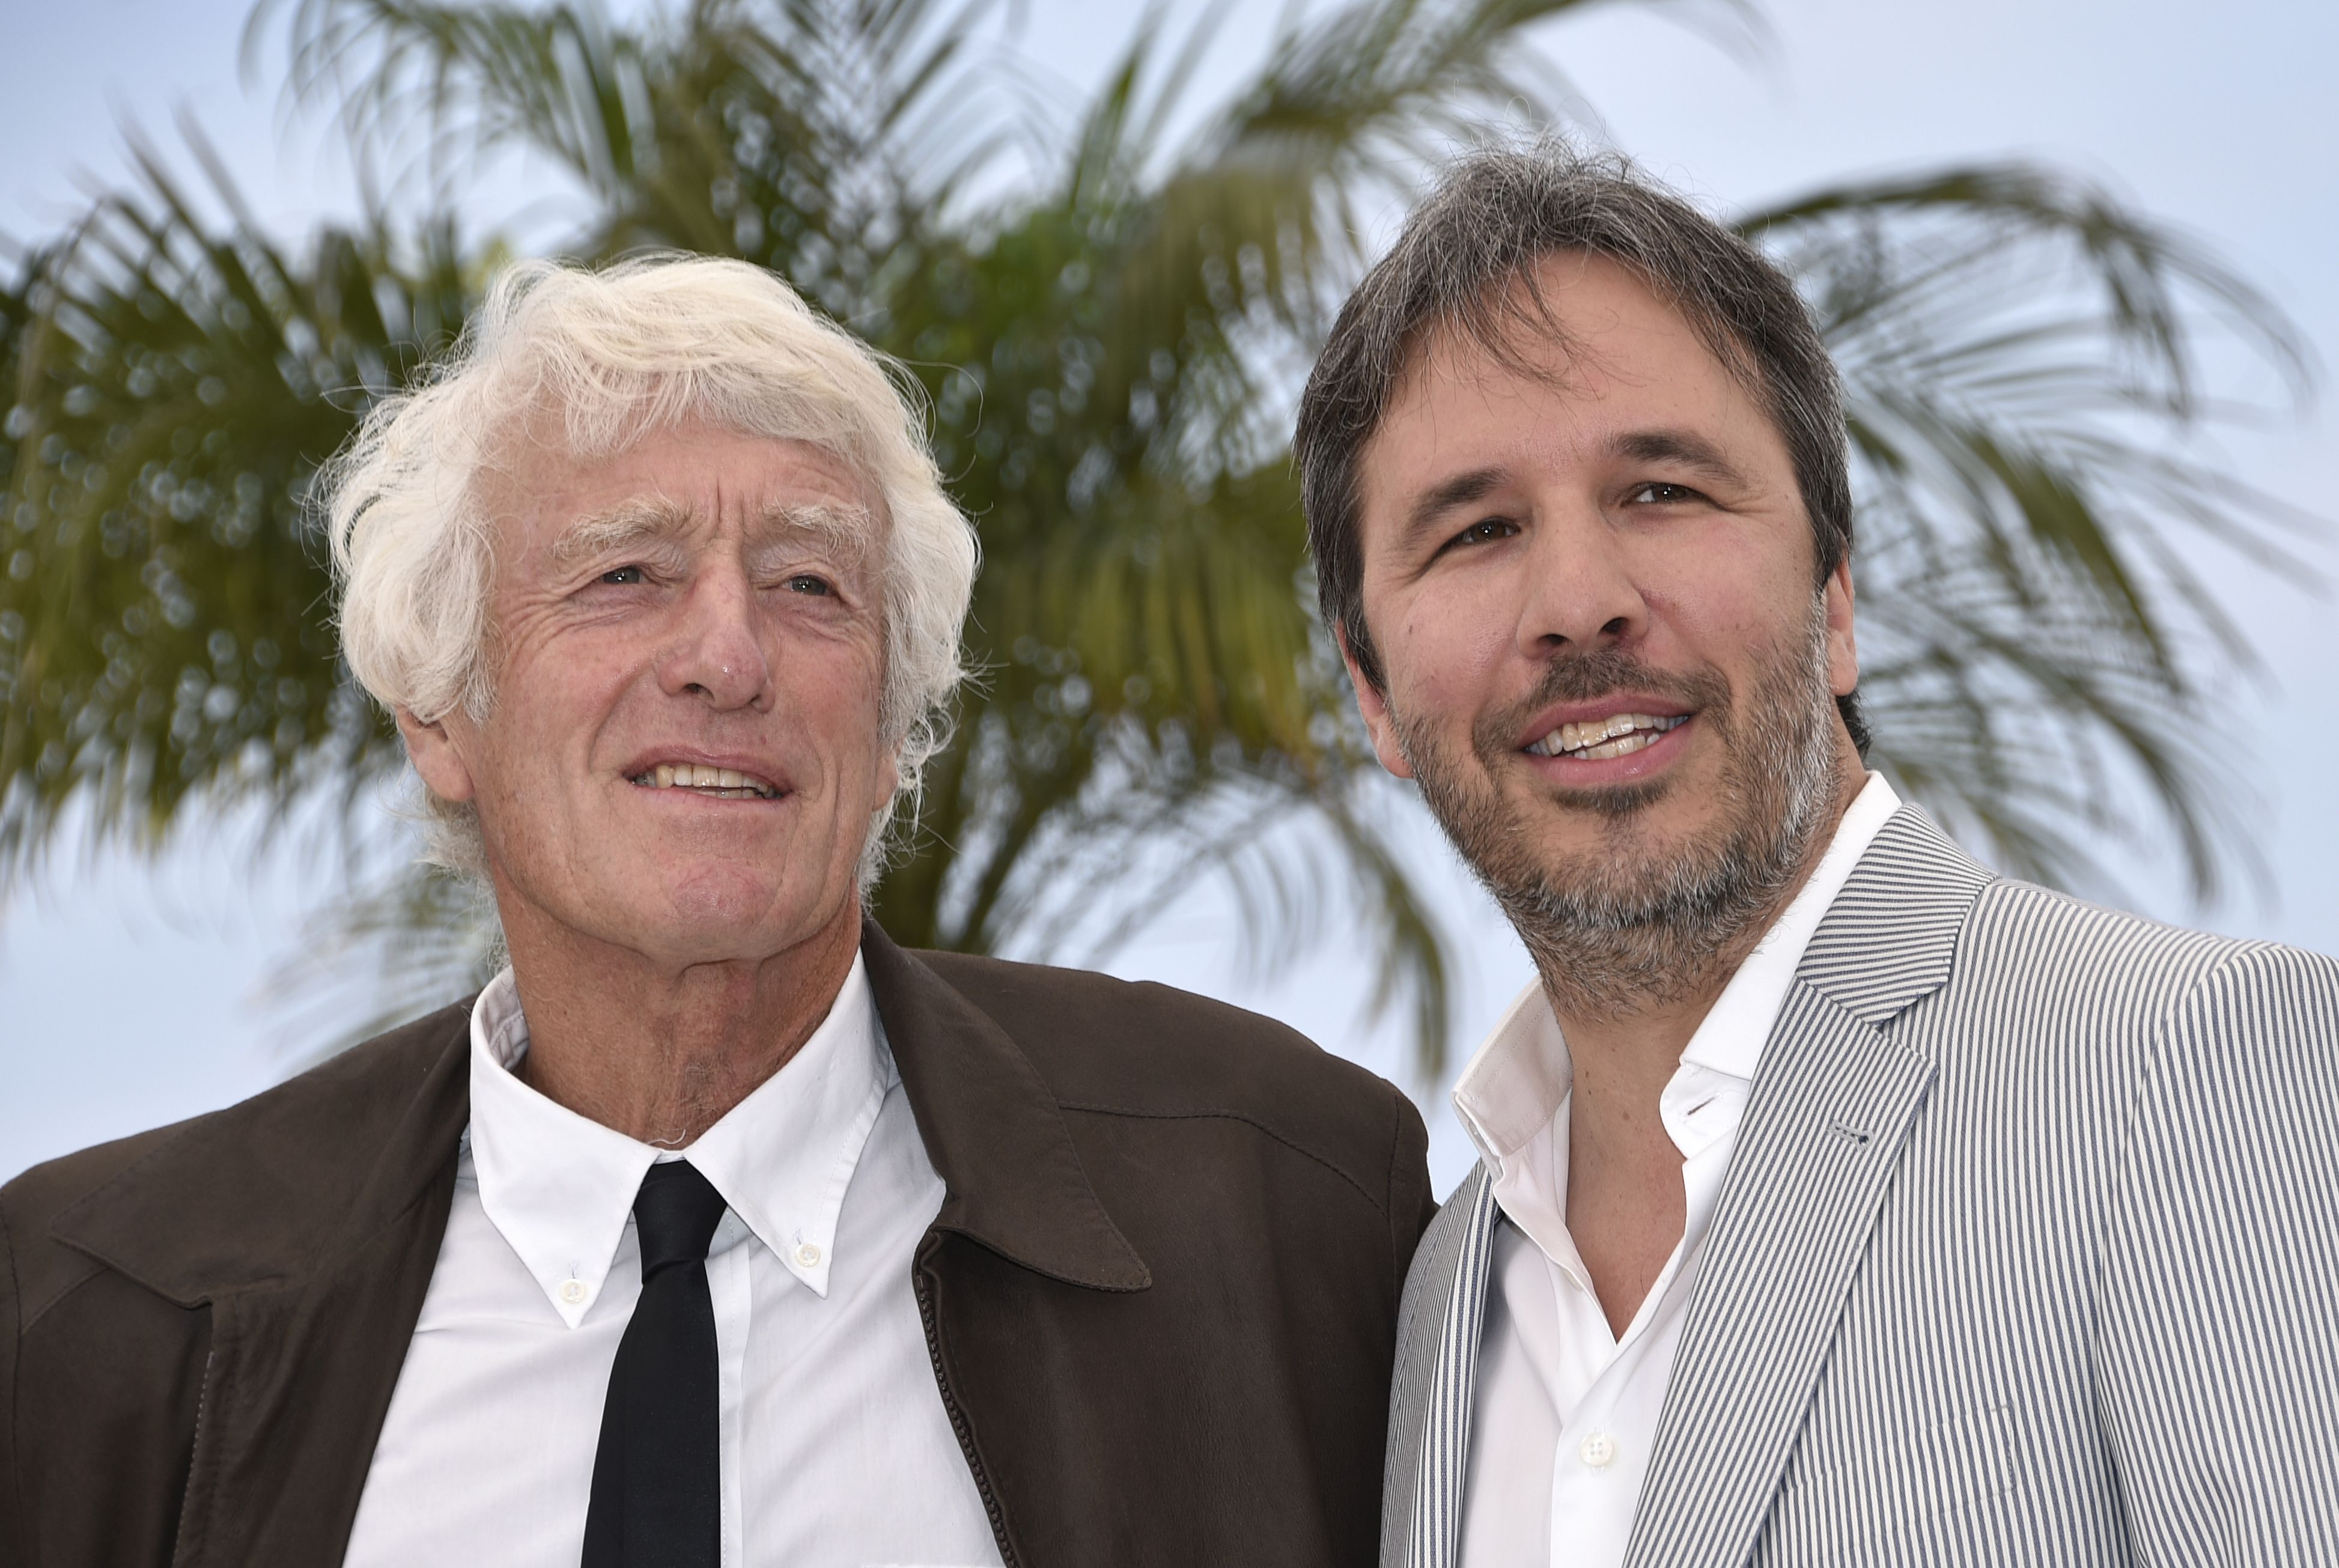 Roger Deakins and Denis Villeneuve